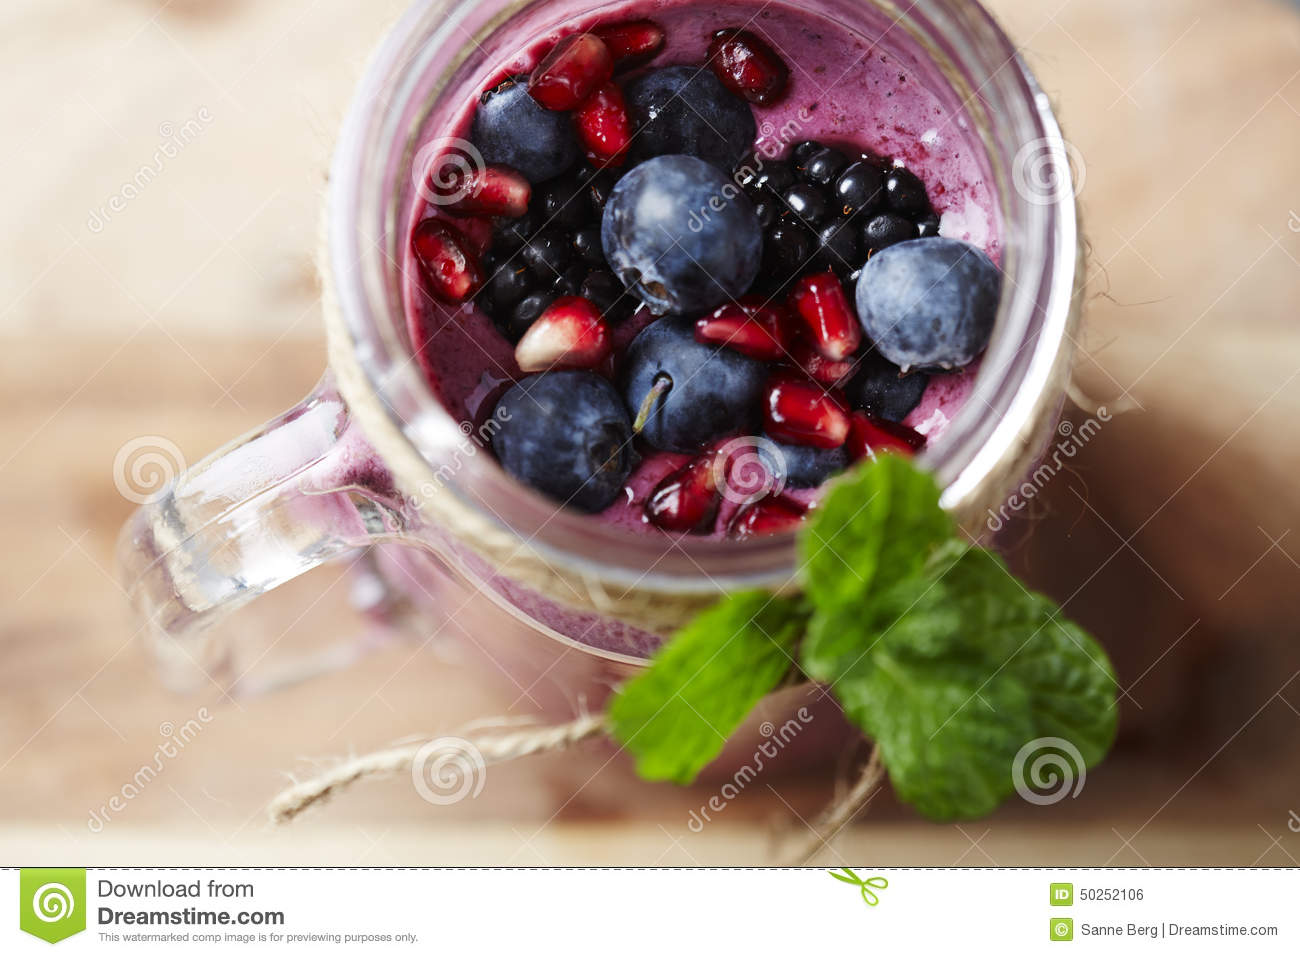 how to make homemade fruit smoothies